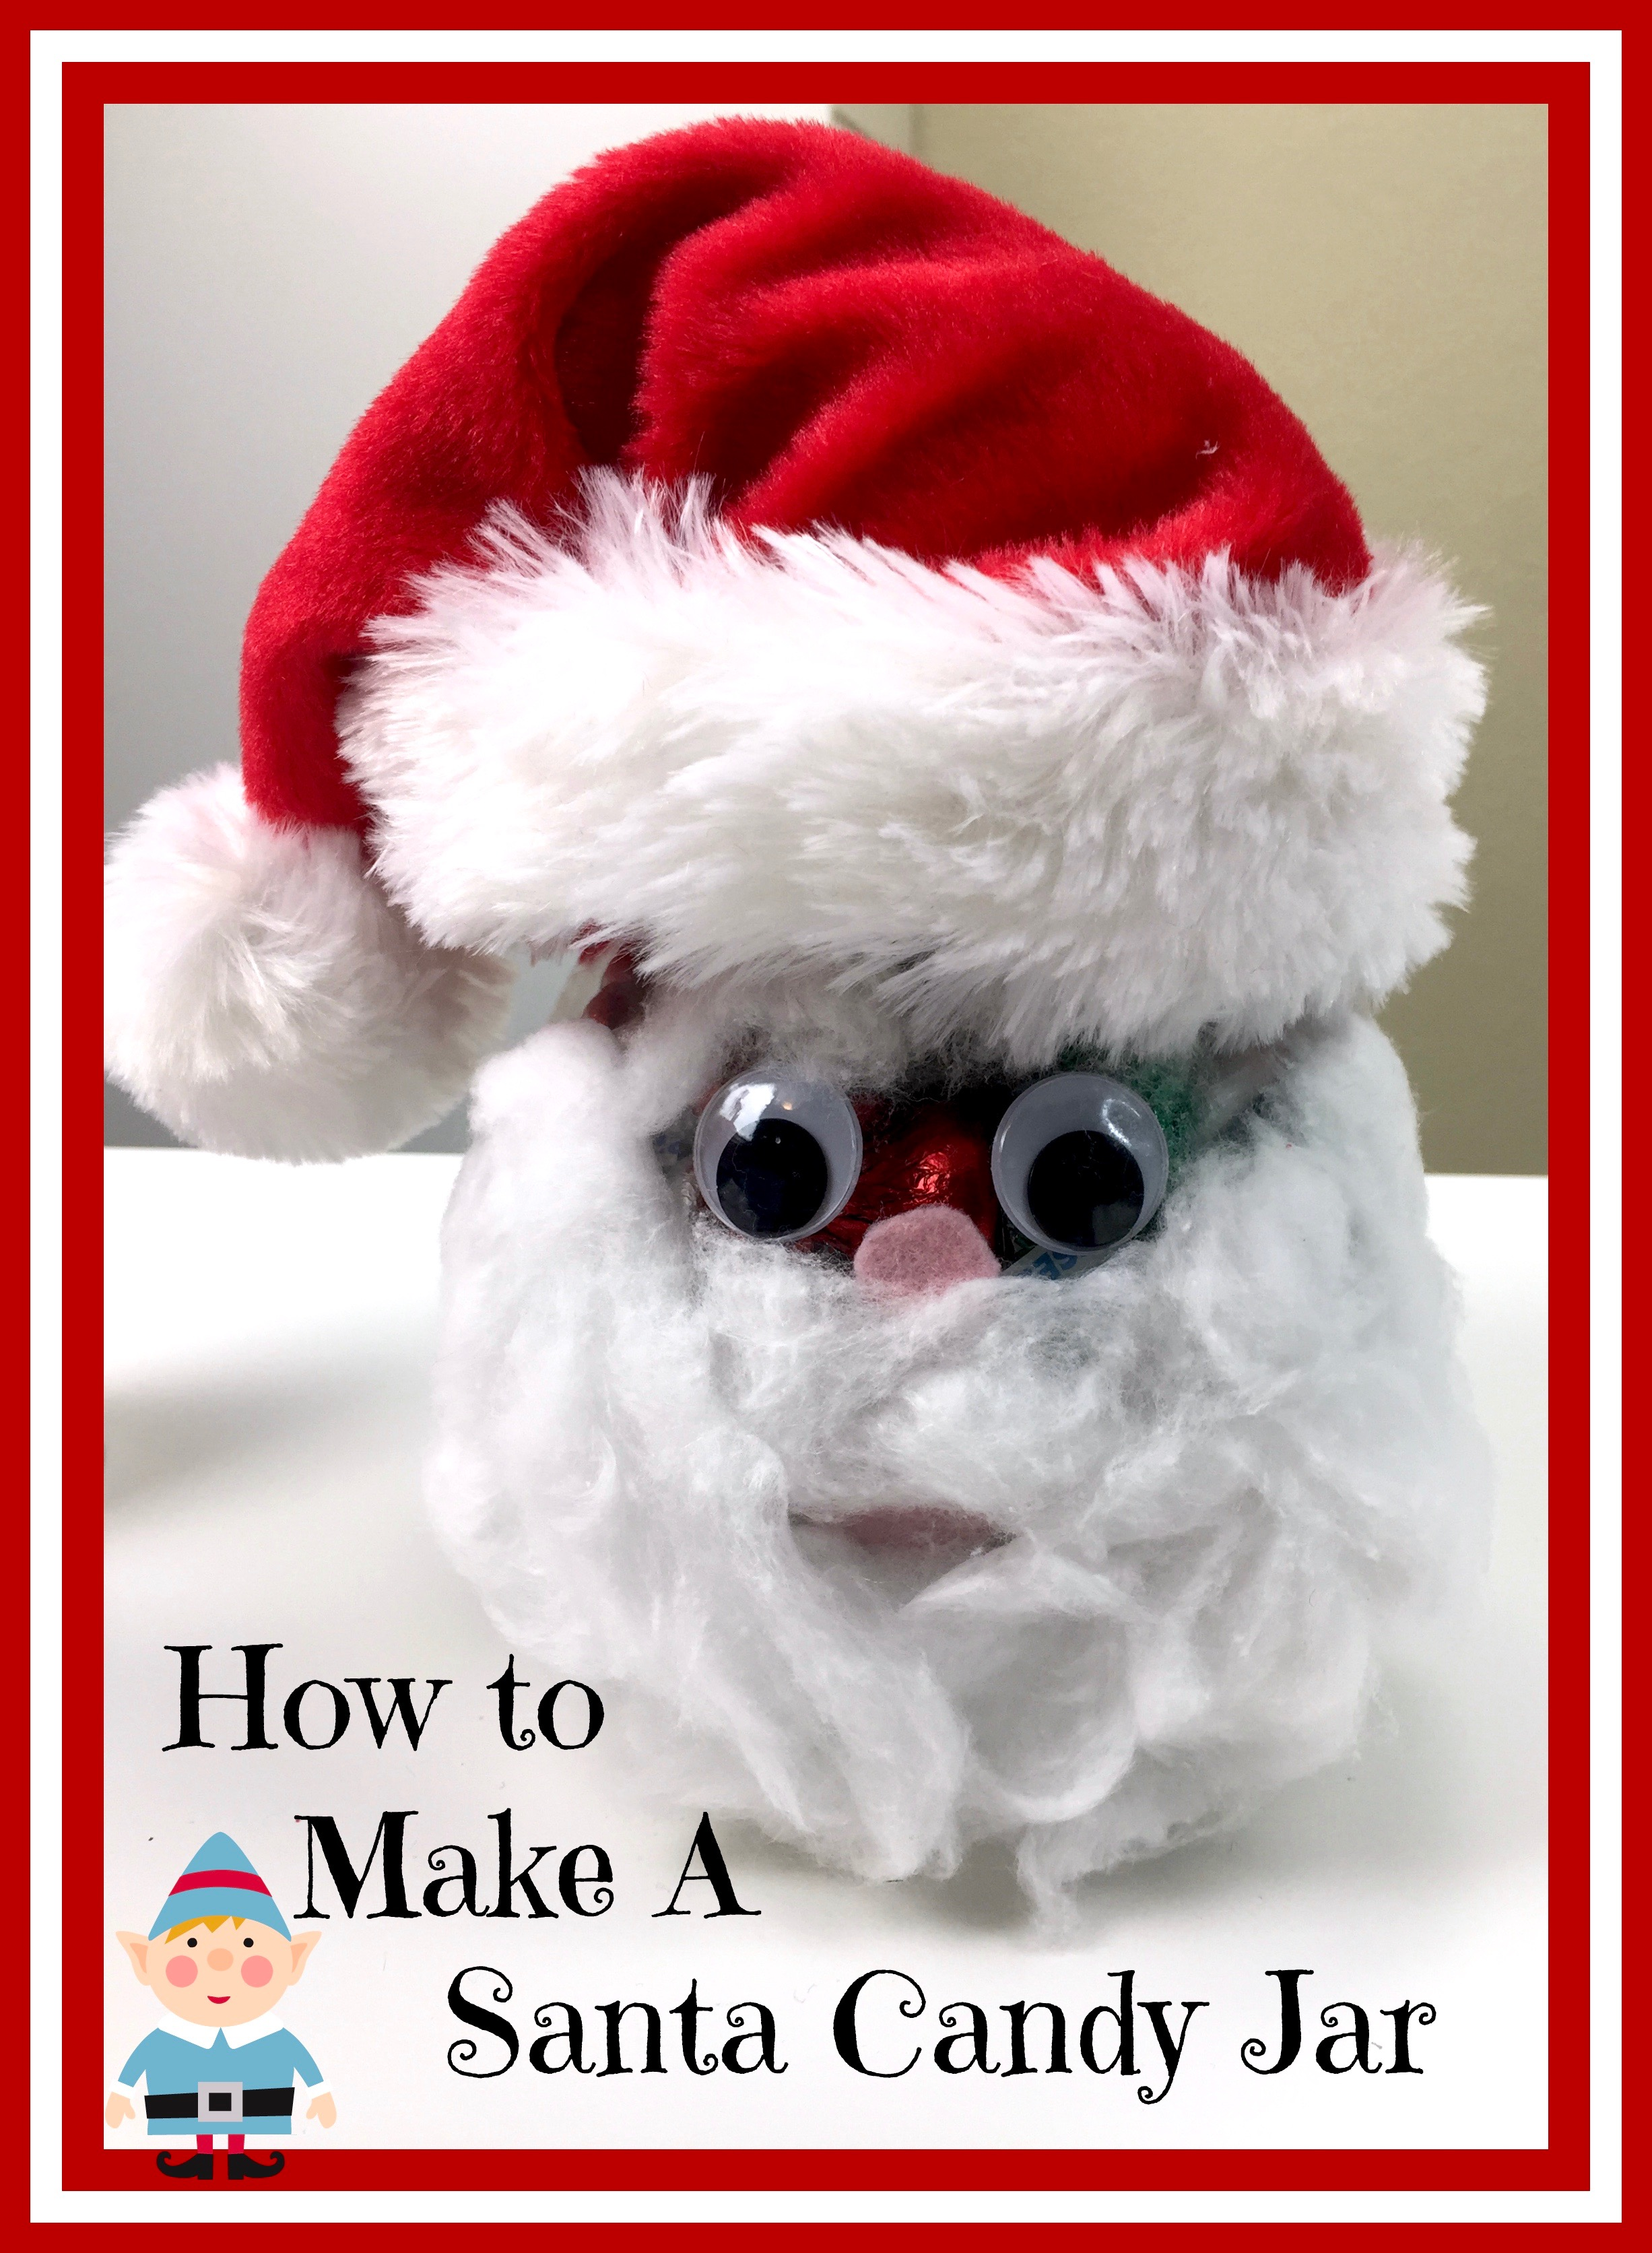 #Santa #Holidays #DIY #Crafts #HolidayFun #Hershey #Candy